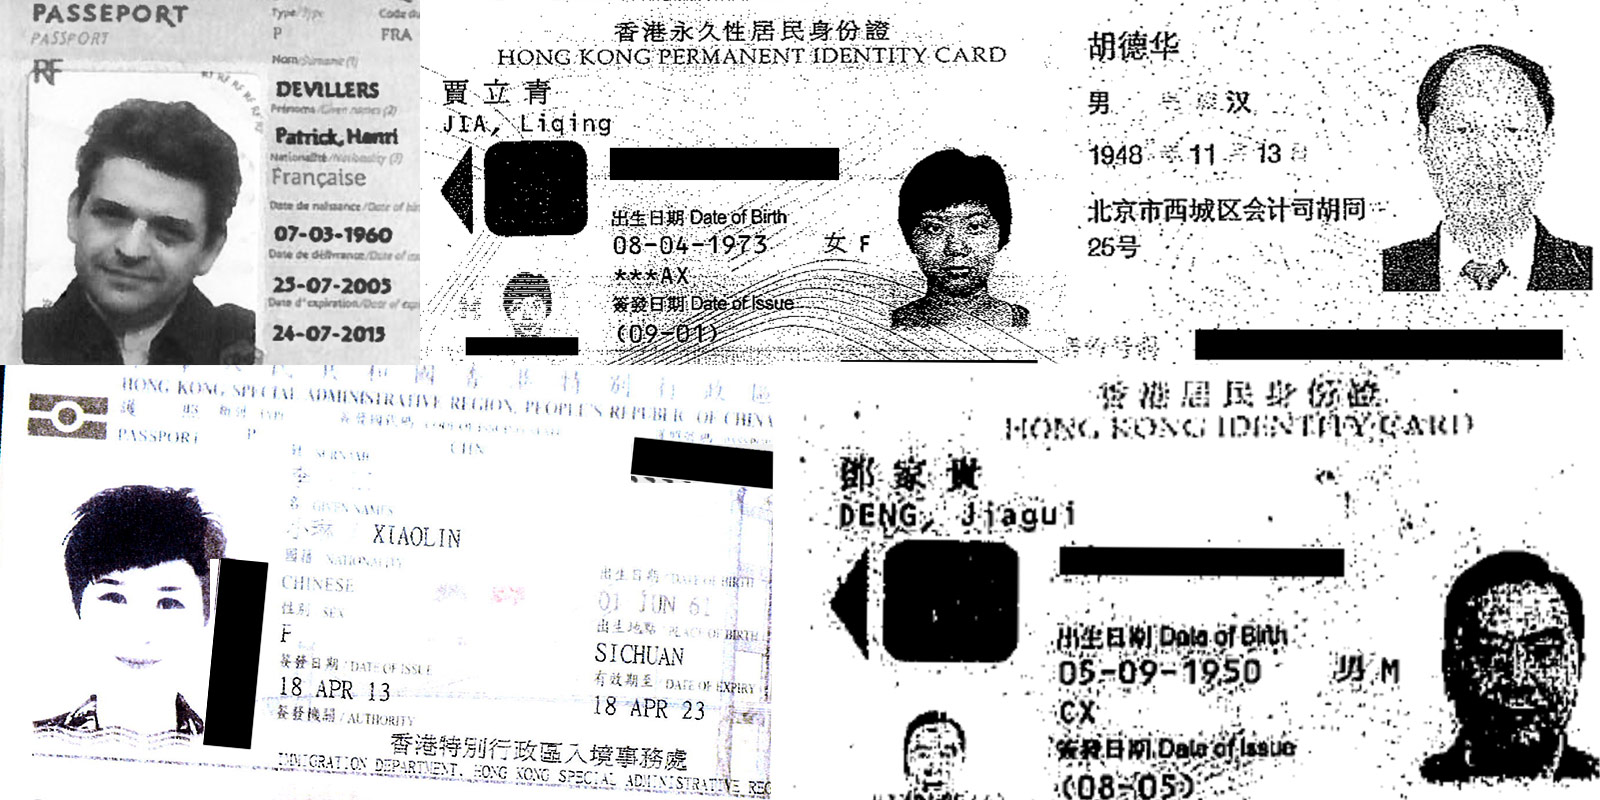 Identity documents from the Panama Papers